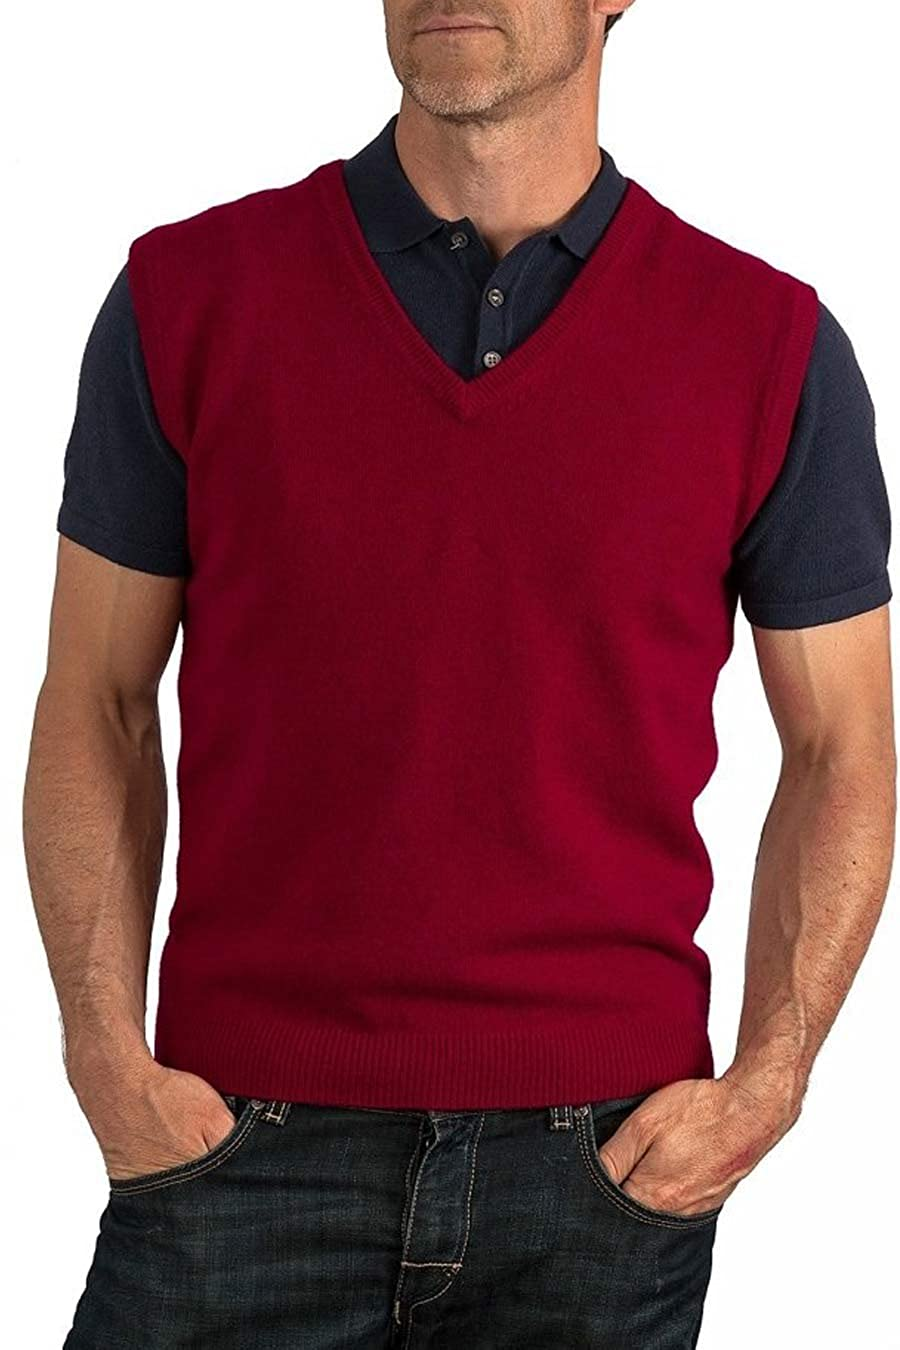 AARHON Mens V Neck Sleeveless Knitted Jumper Plus Size Sweater Mens Top Size UK